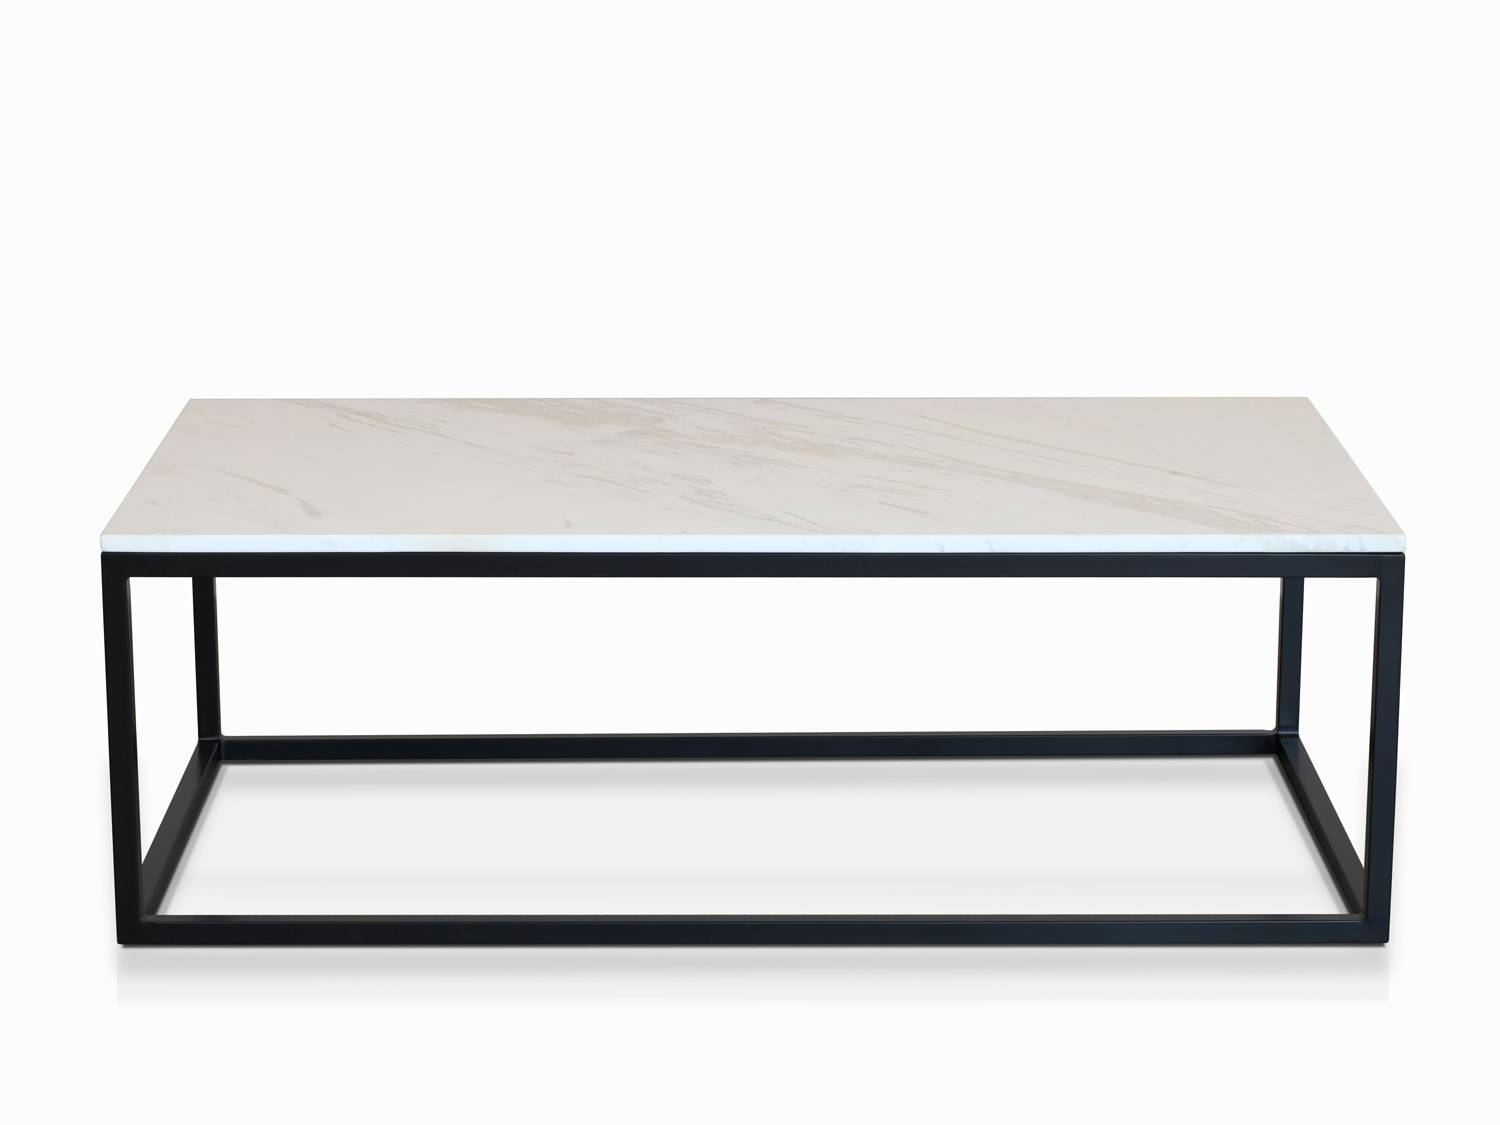 Table Diani White Marble Coffee Table White Marble Coffee Table Intended For Small Marble Coffee Tables (View 27 of 30)